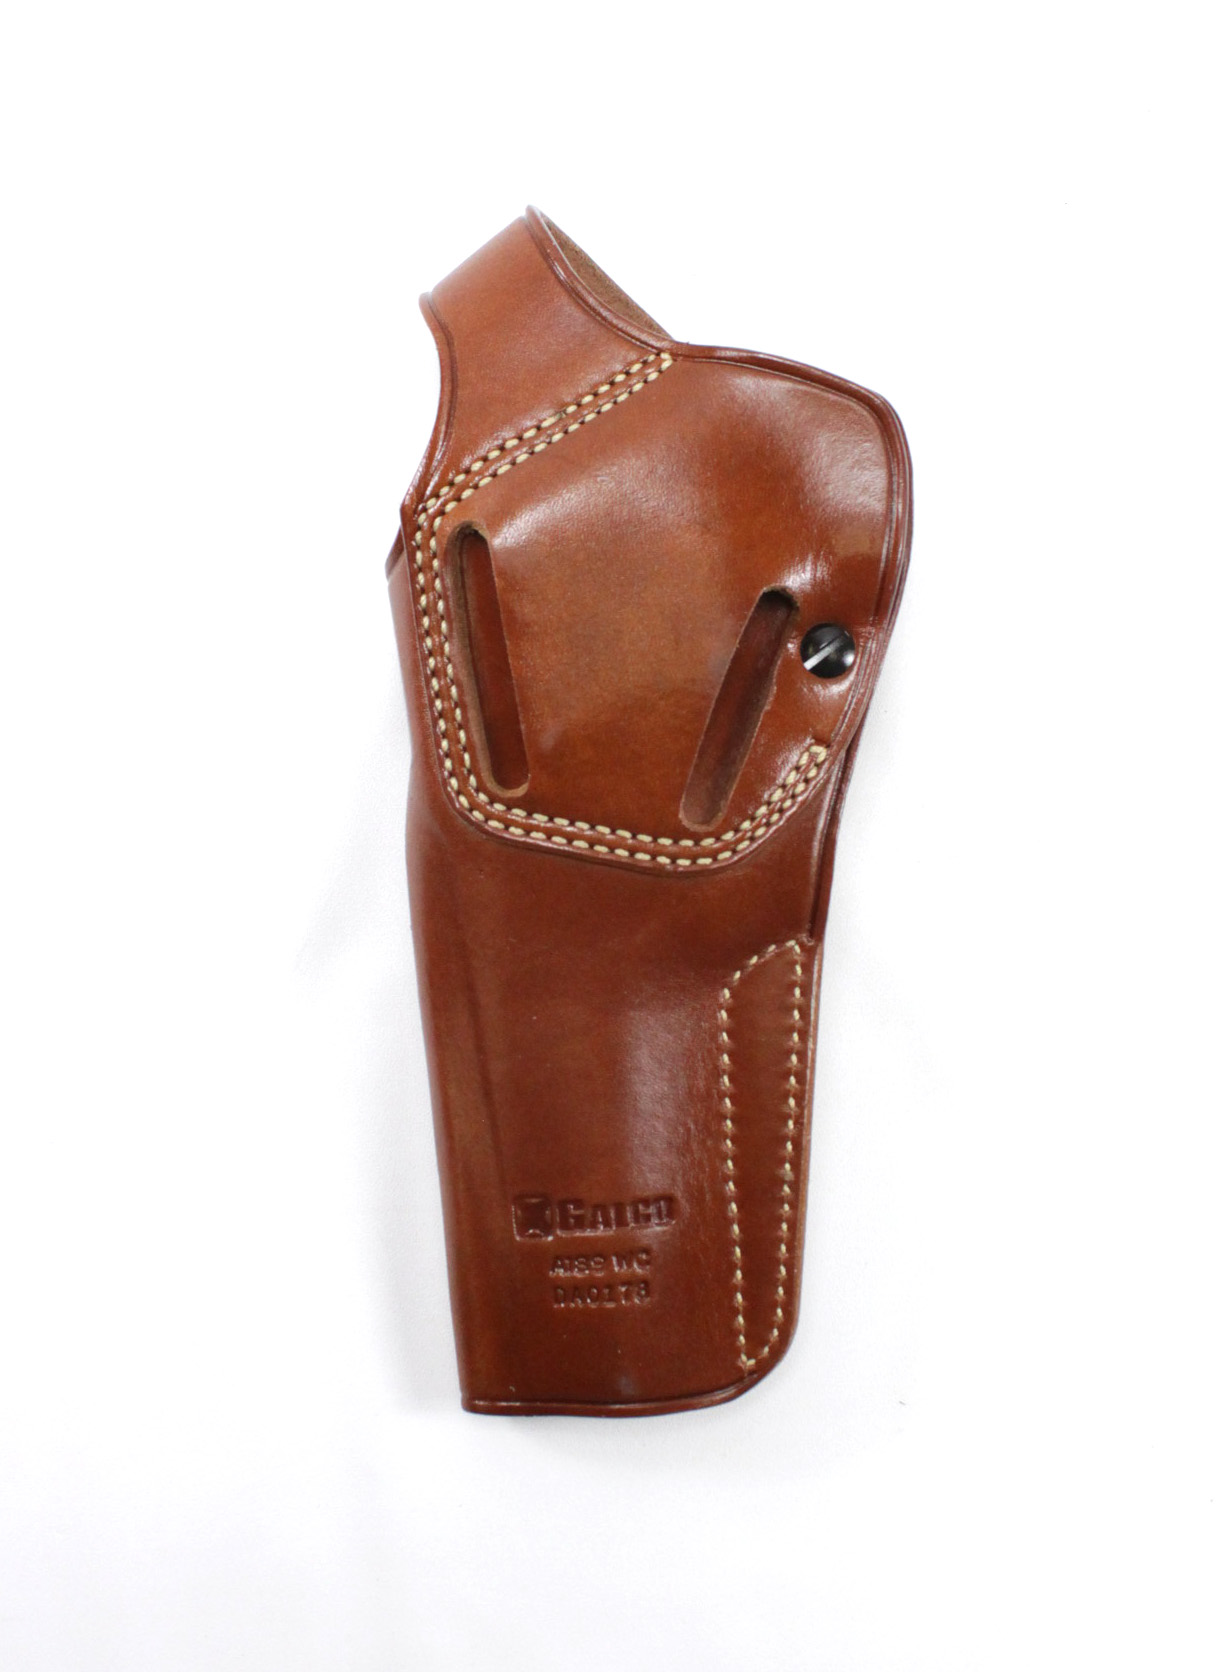 Galco DAO186 Revolver Holster Fits Ruger Alaskan 44, Redhawk 8 Shot 357 2 5  Inch